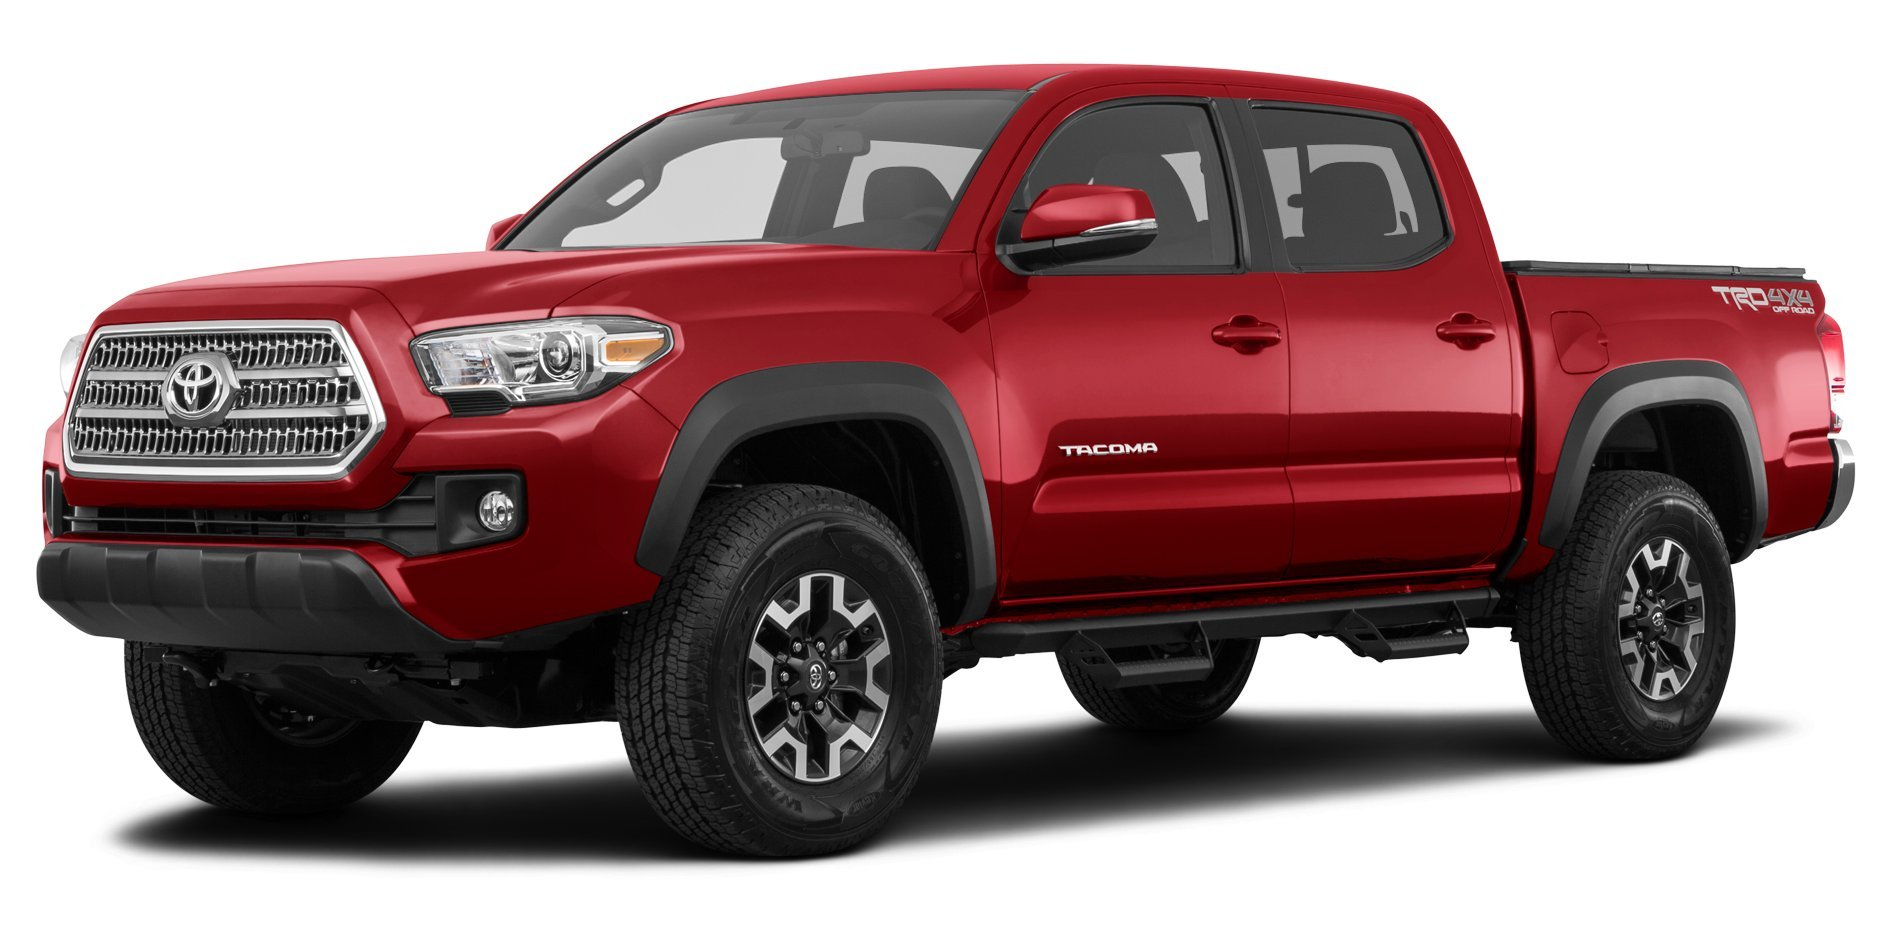 2017 toyota tacoma reviews images and specs vehicles. Black Bedroom Furniture Sets. Home Design Ideas